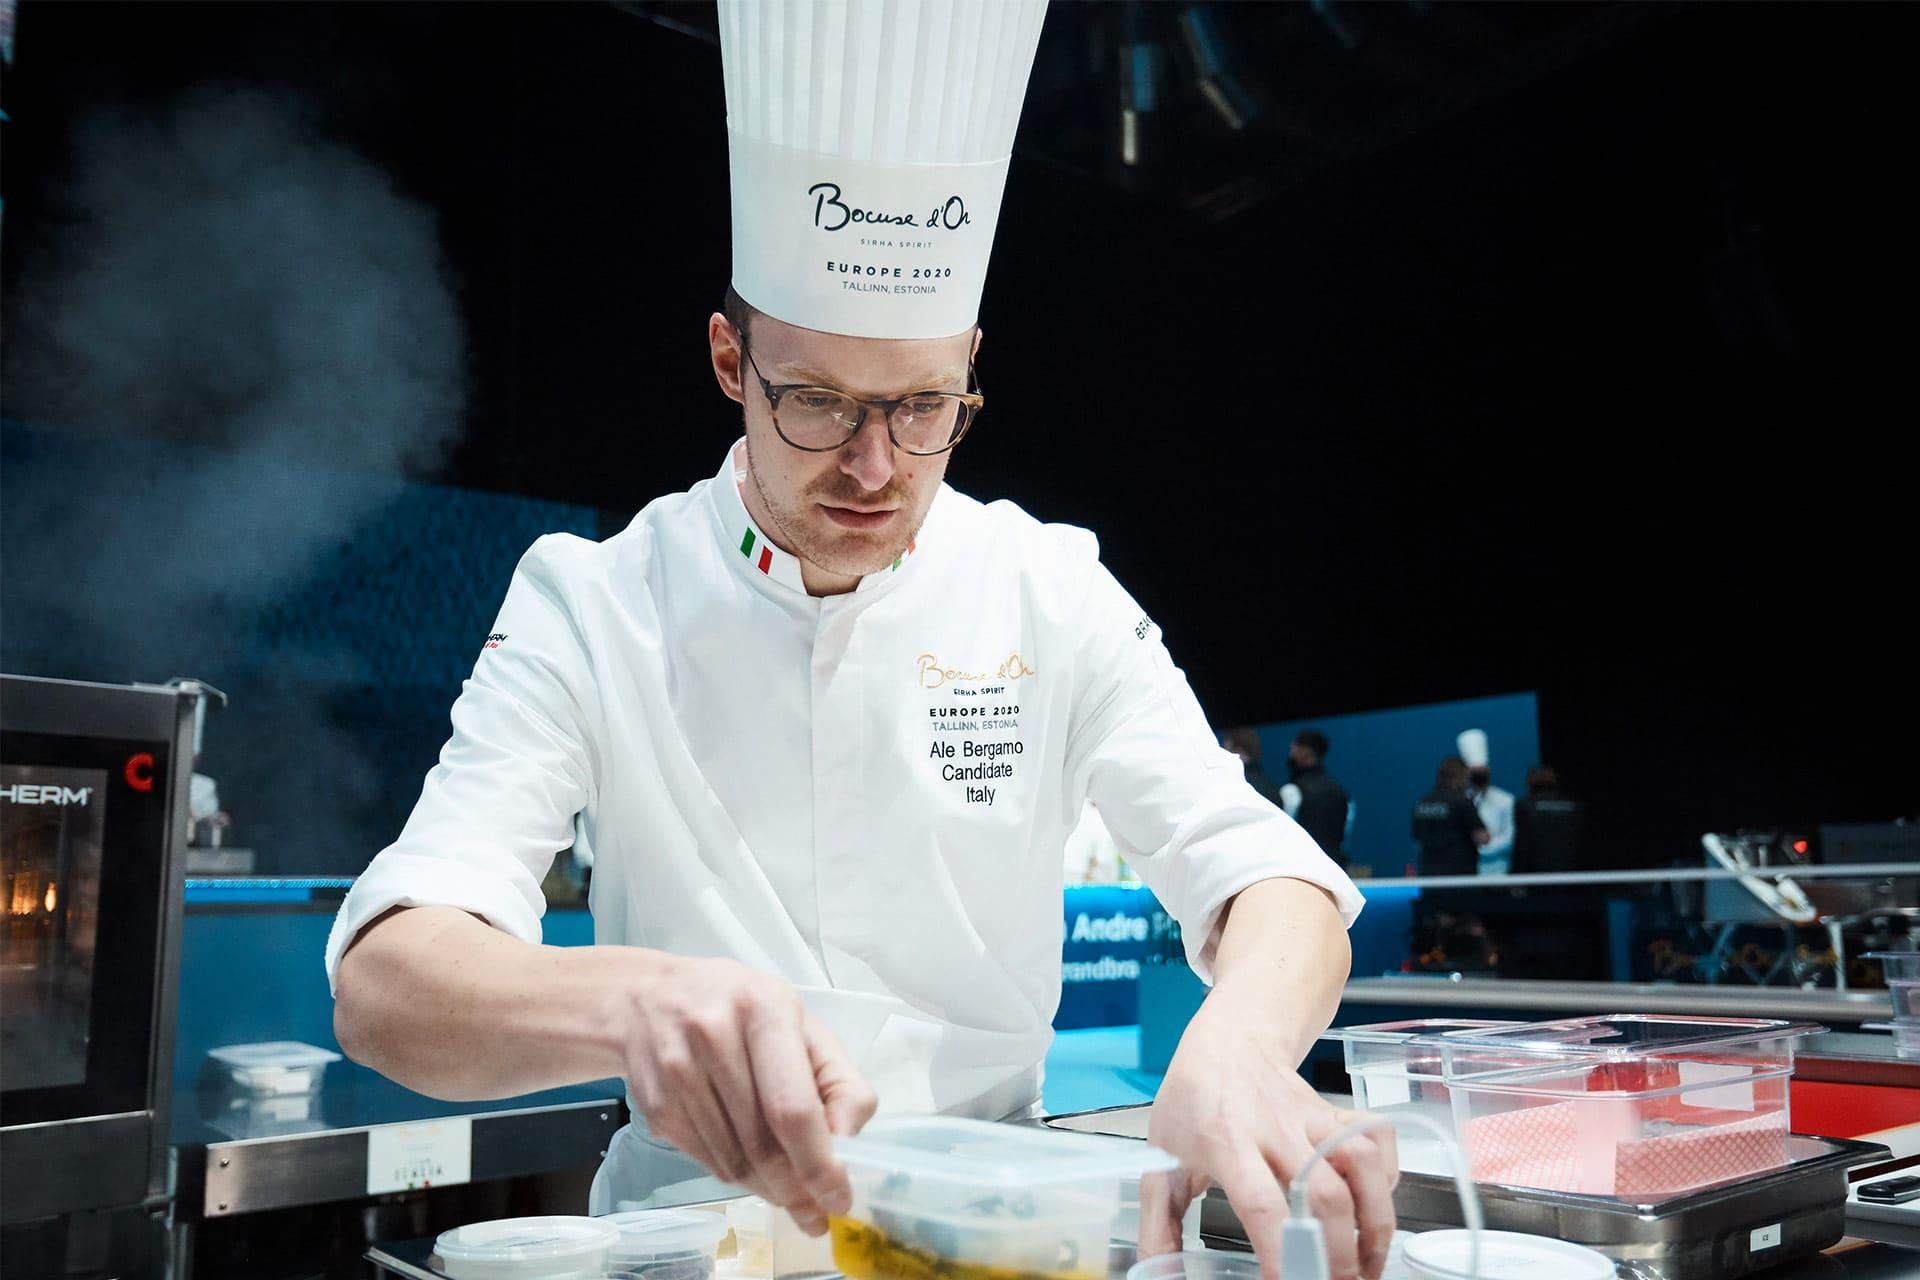 Alessandro Bergamo from Italy during the Bocuse d'Or 2020 Europe